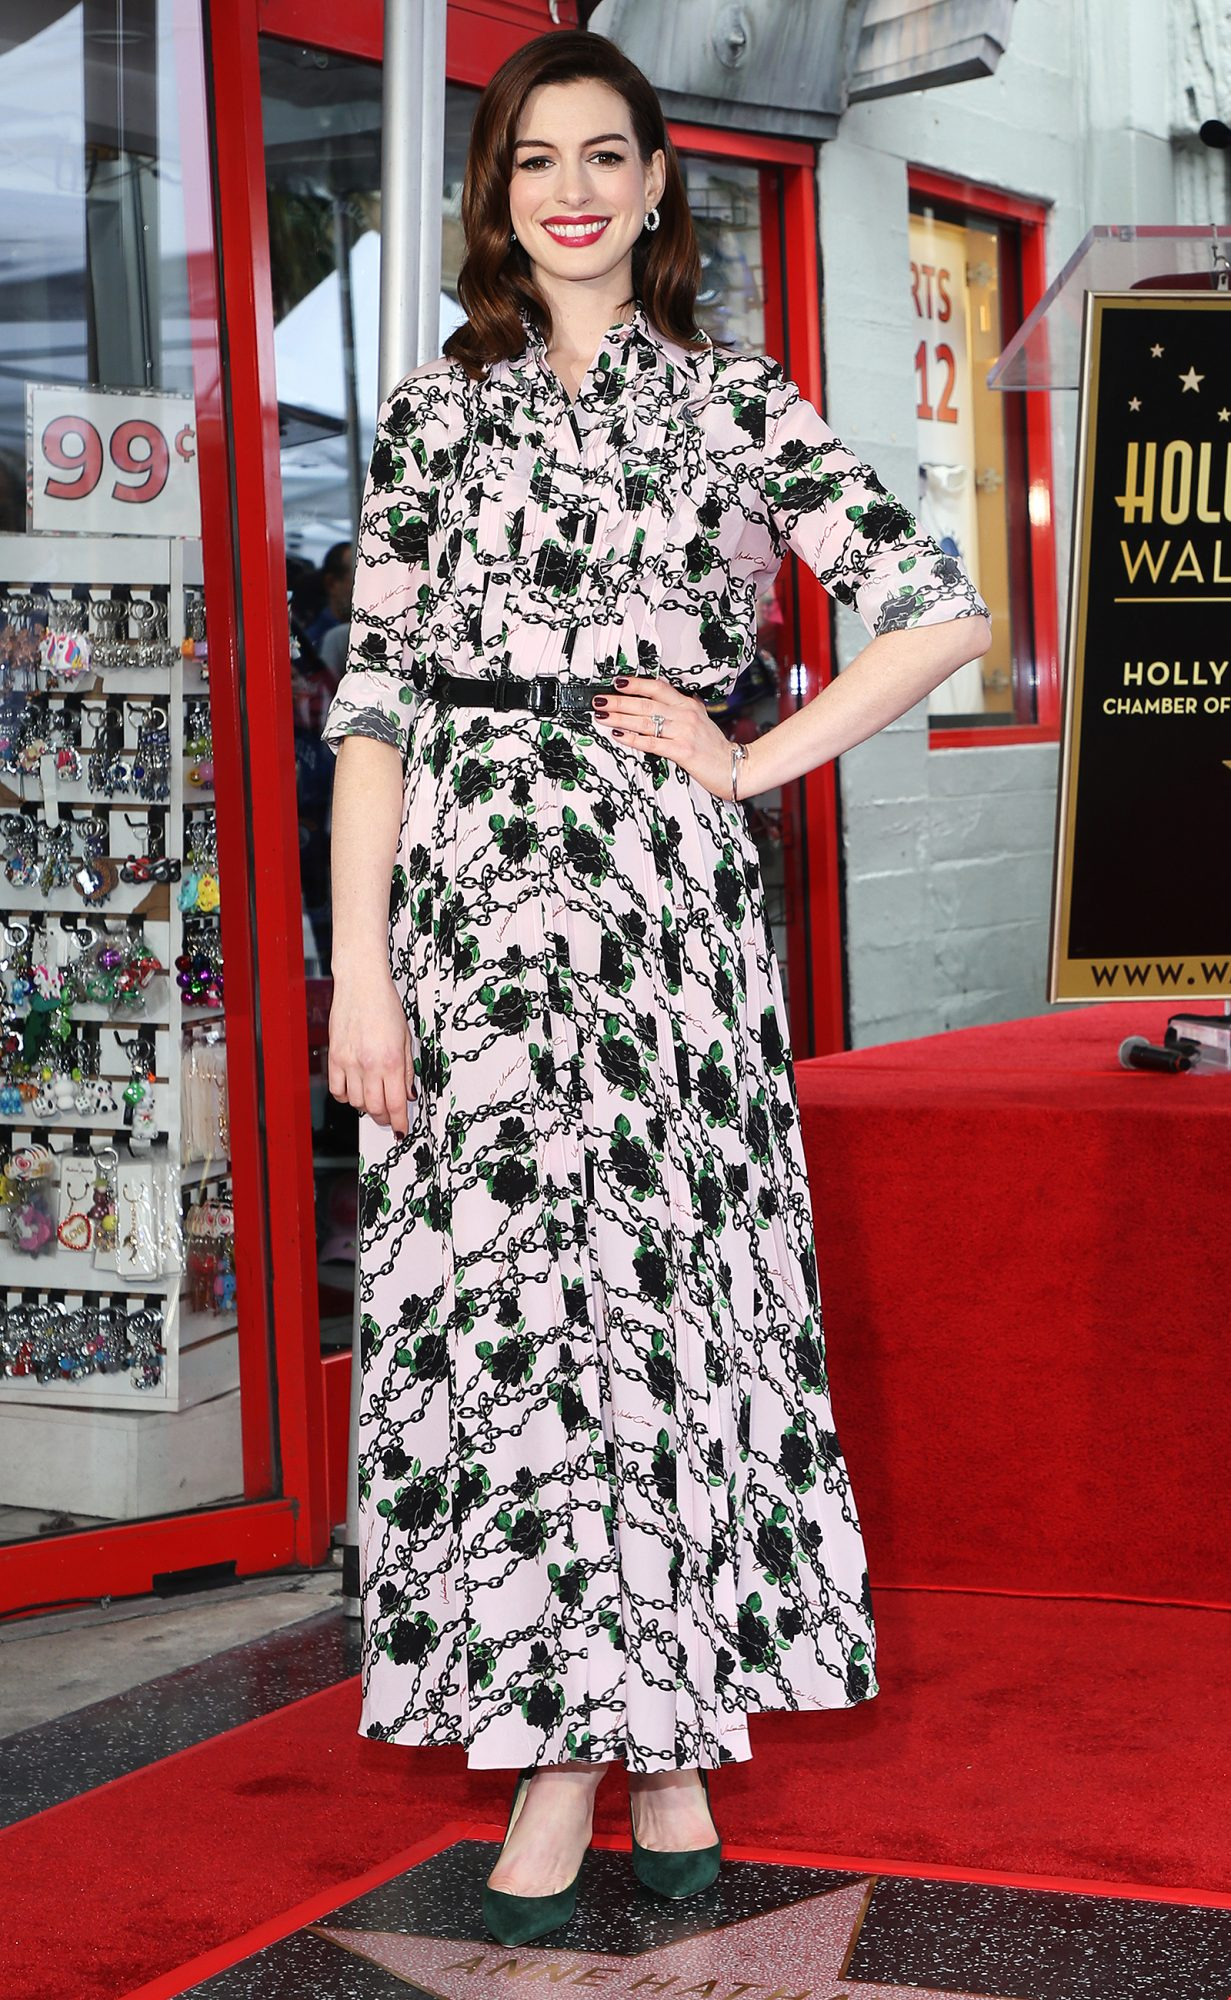 Anne Hathaway Honored With Star On The Hollywood Walk Of Fame